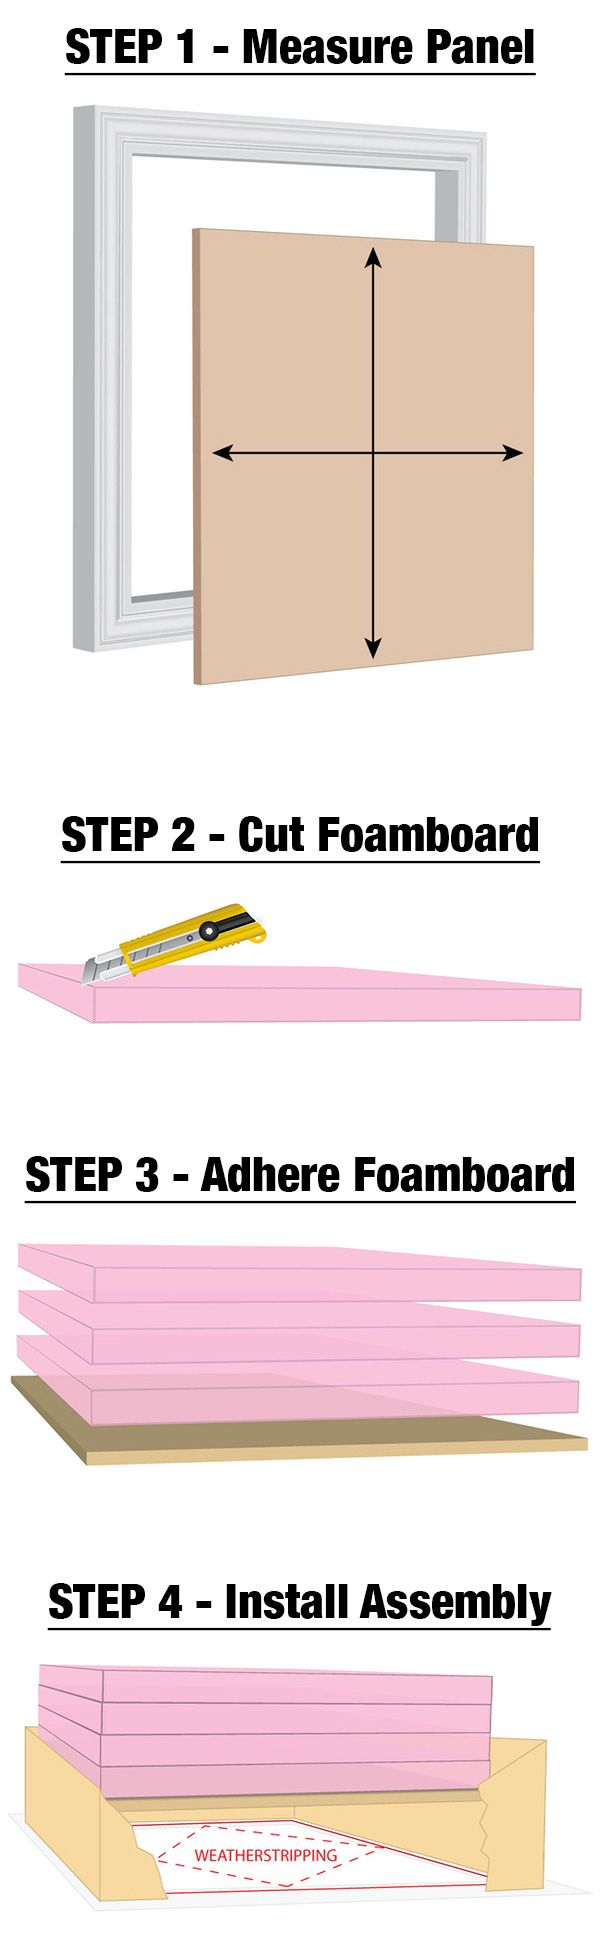 How to Insulate Attic Hatch - 2  foamboard has an R-10 value and is easy to work with. Use multiple layers and weatherstripping to effectively insulate an ...  sc 1 st  Pinterest & Insulate Your Attic Hatch Panels | Pinterest | Attic Insulation and ...